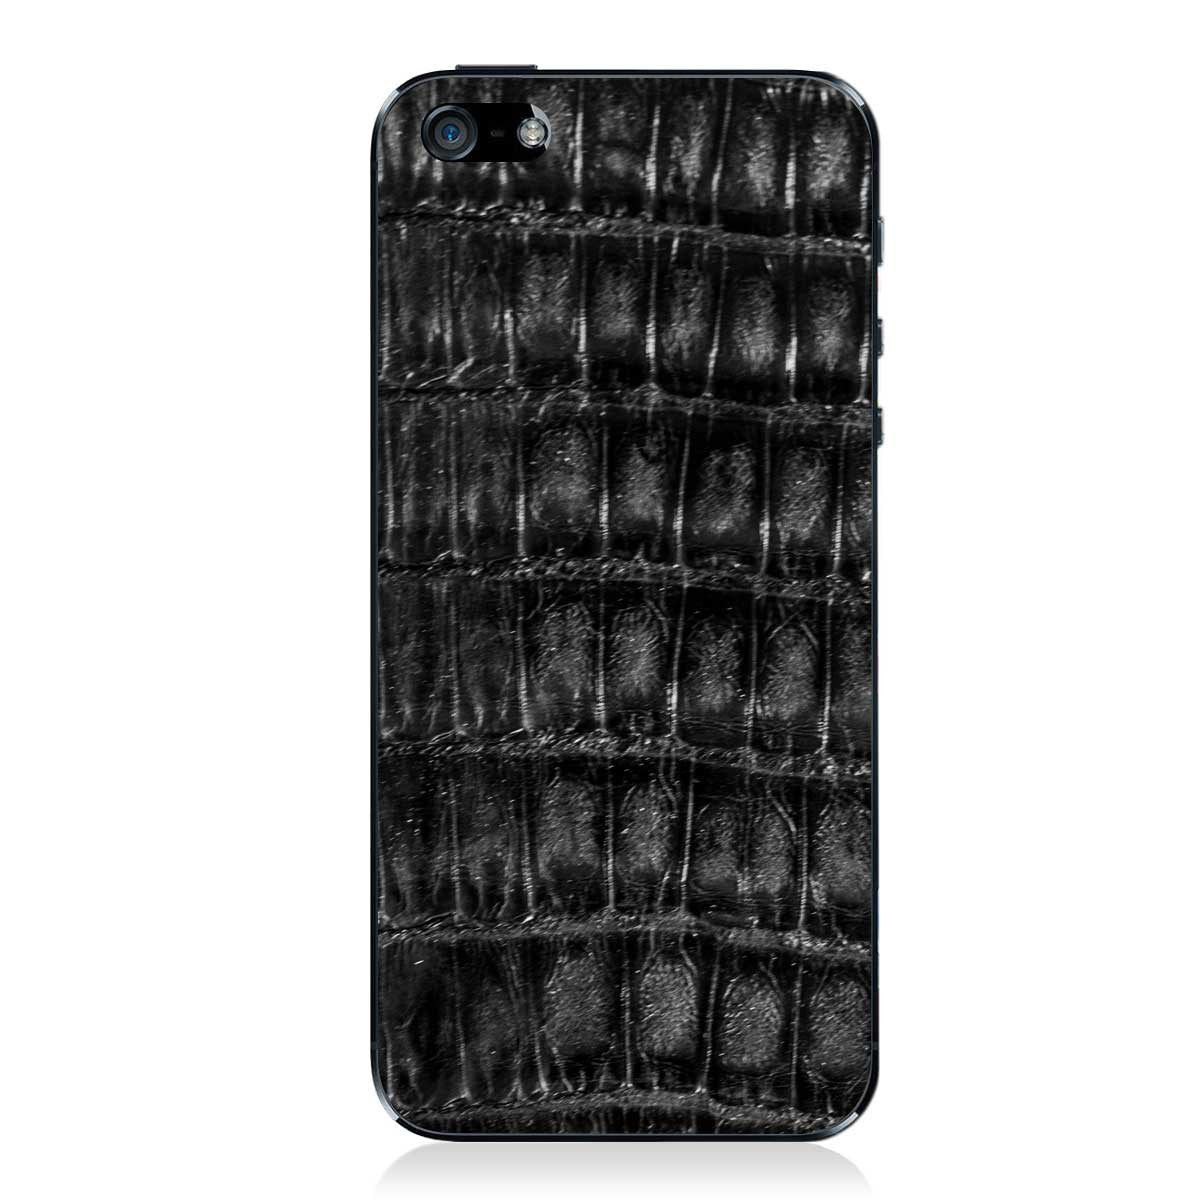 Black Crocodile iPhone 5 - 5S - SE Leather Skin